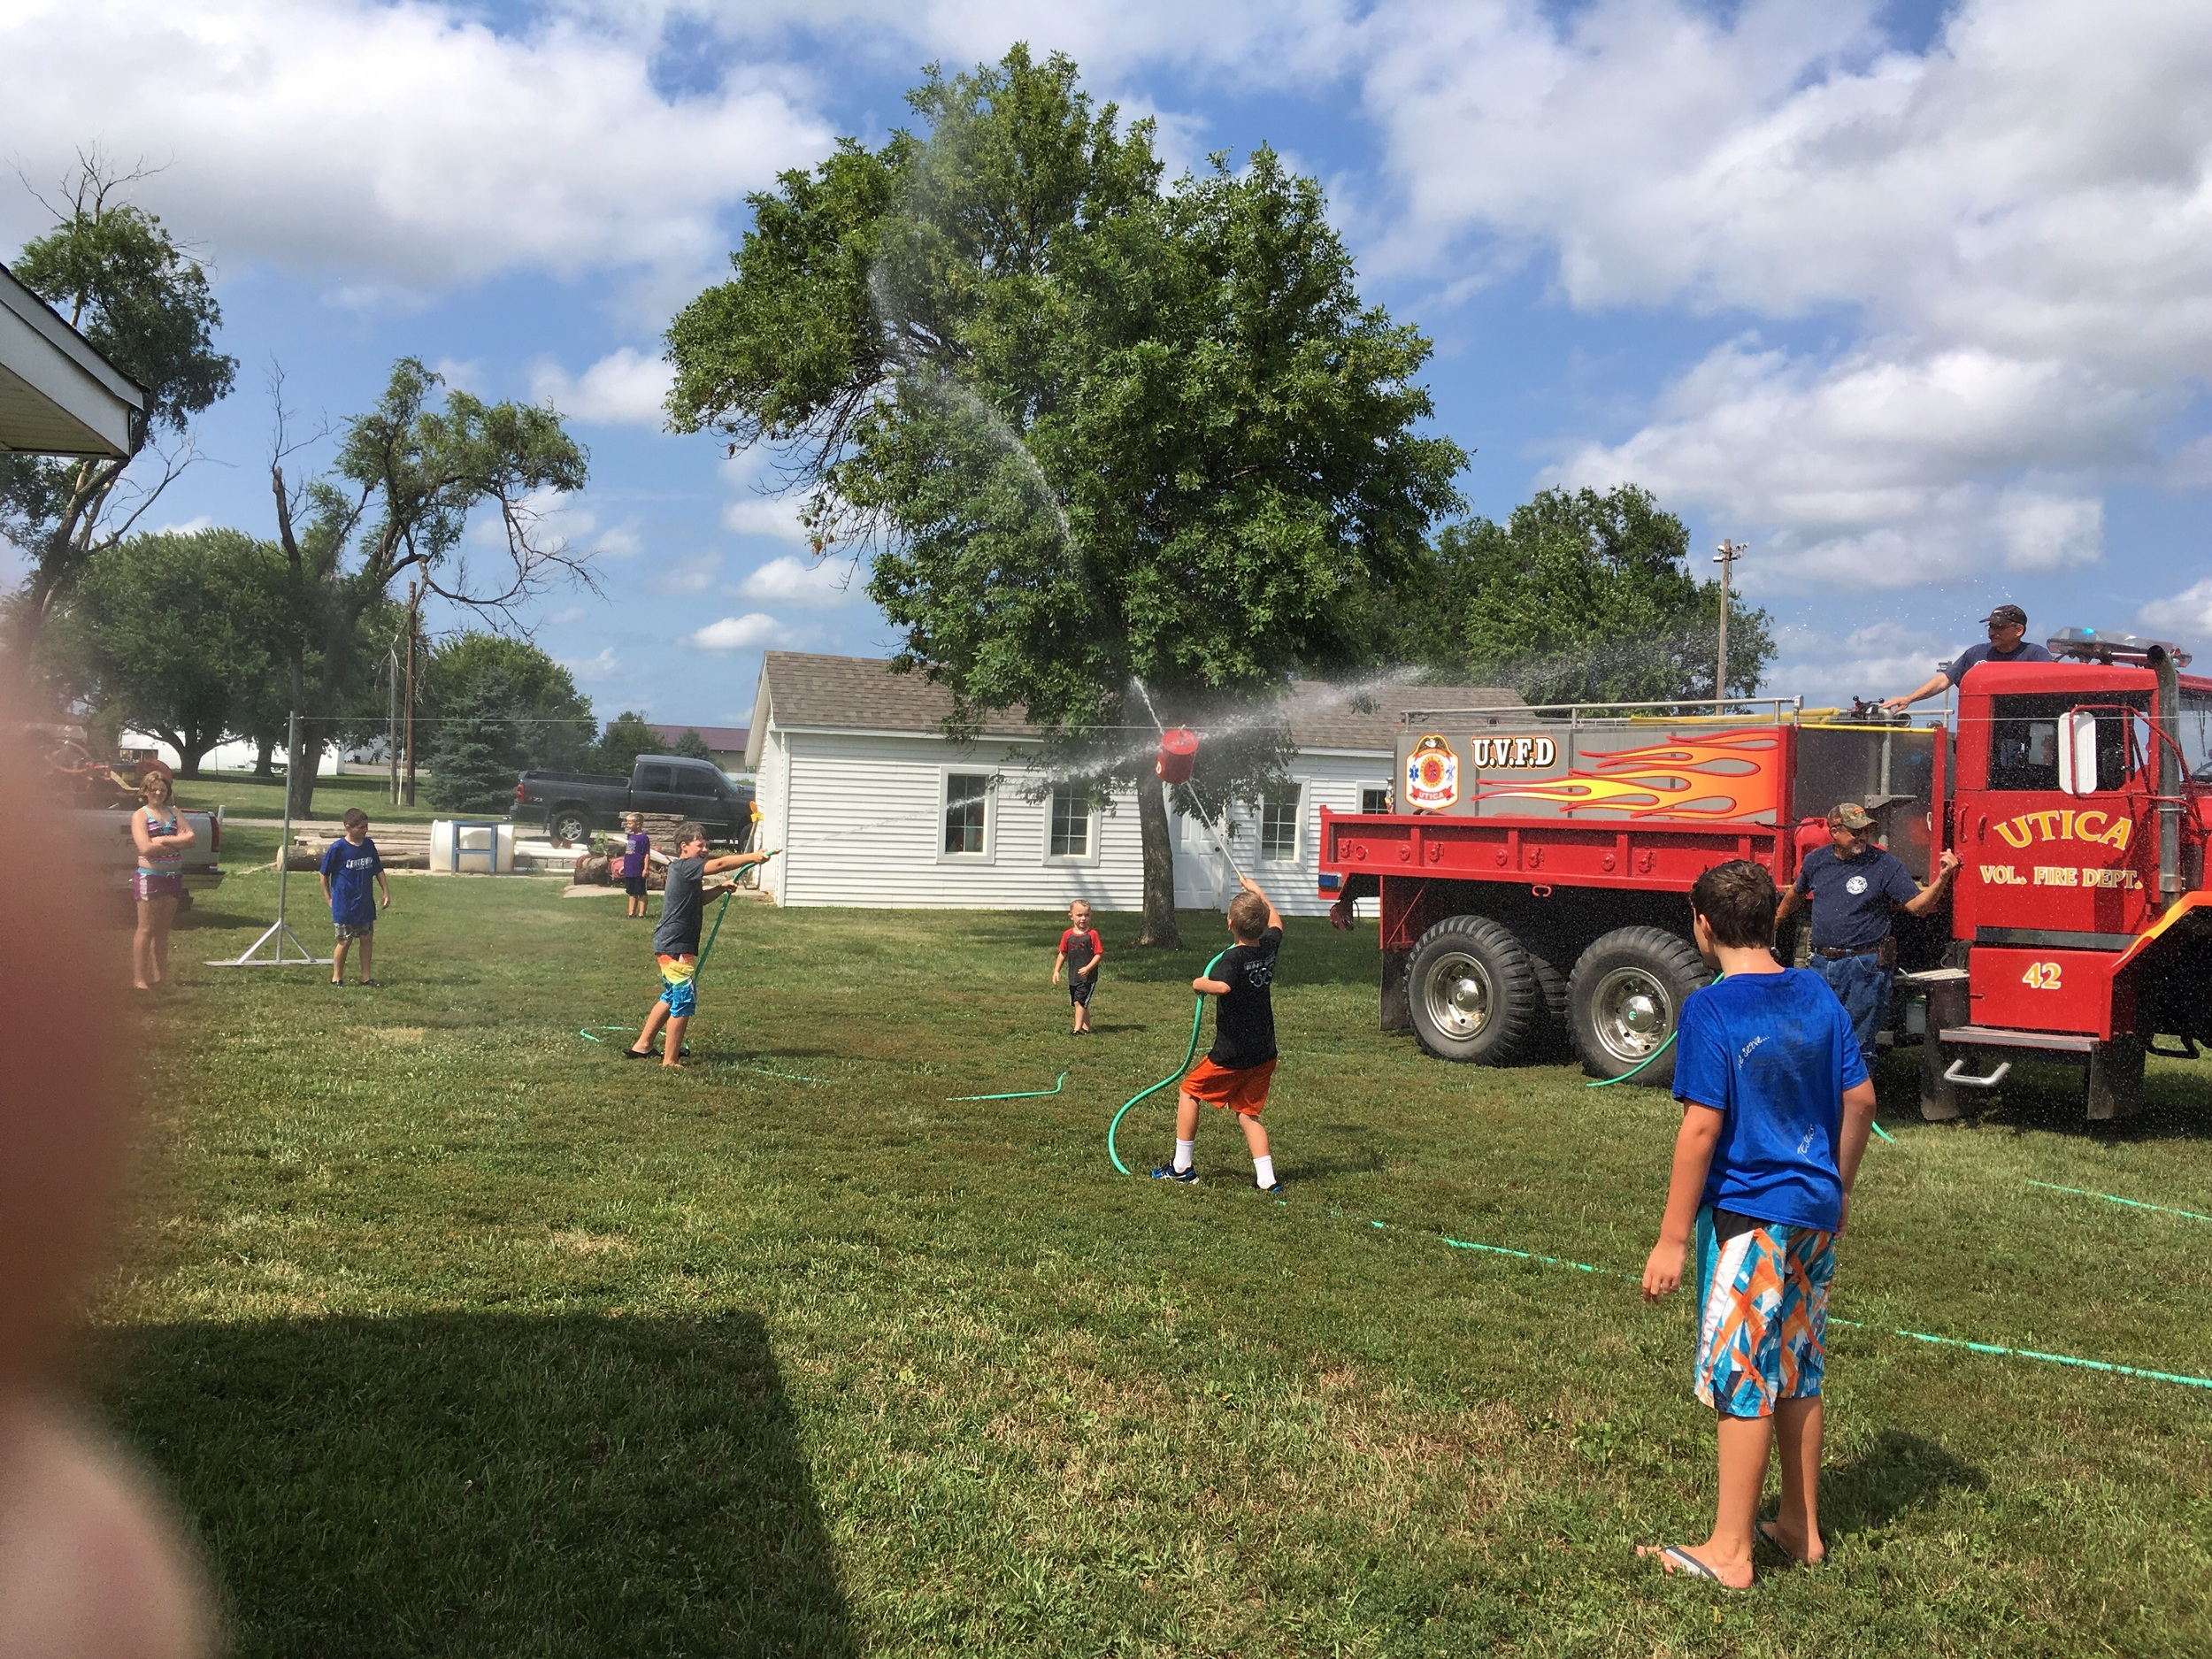 The water fights hosted by the Utica VFD